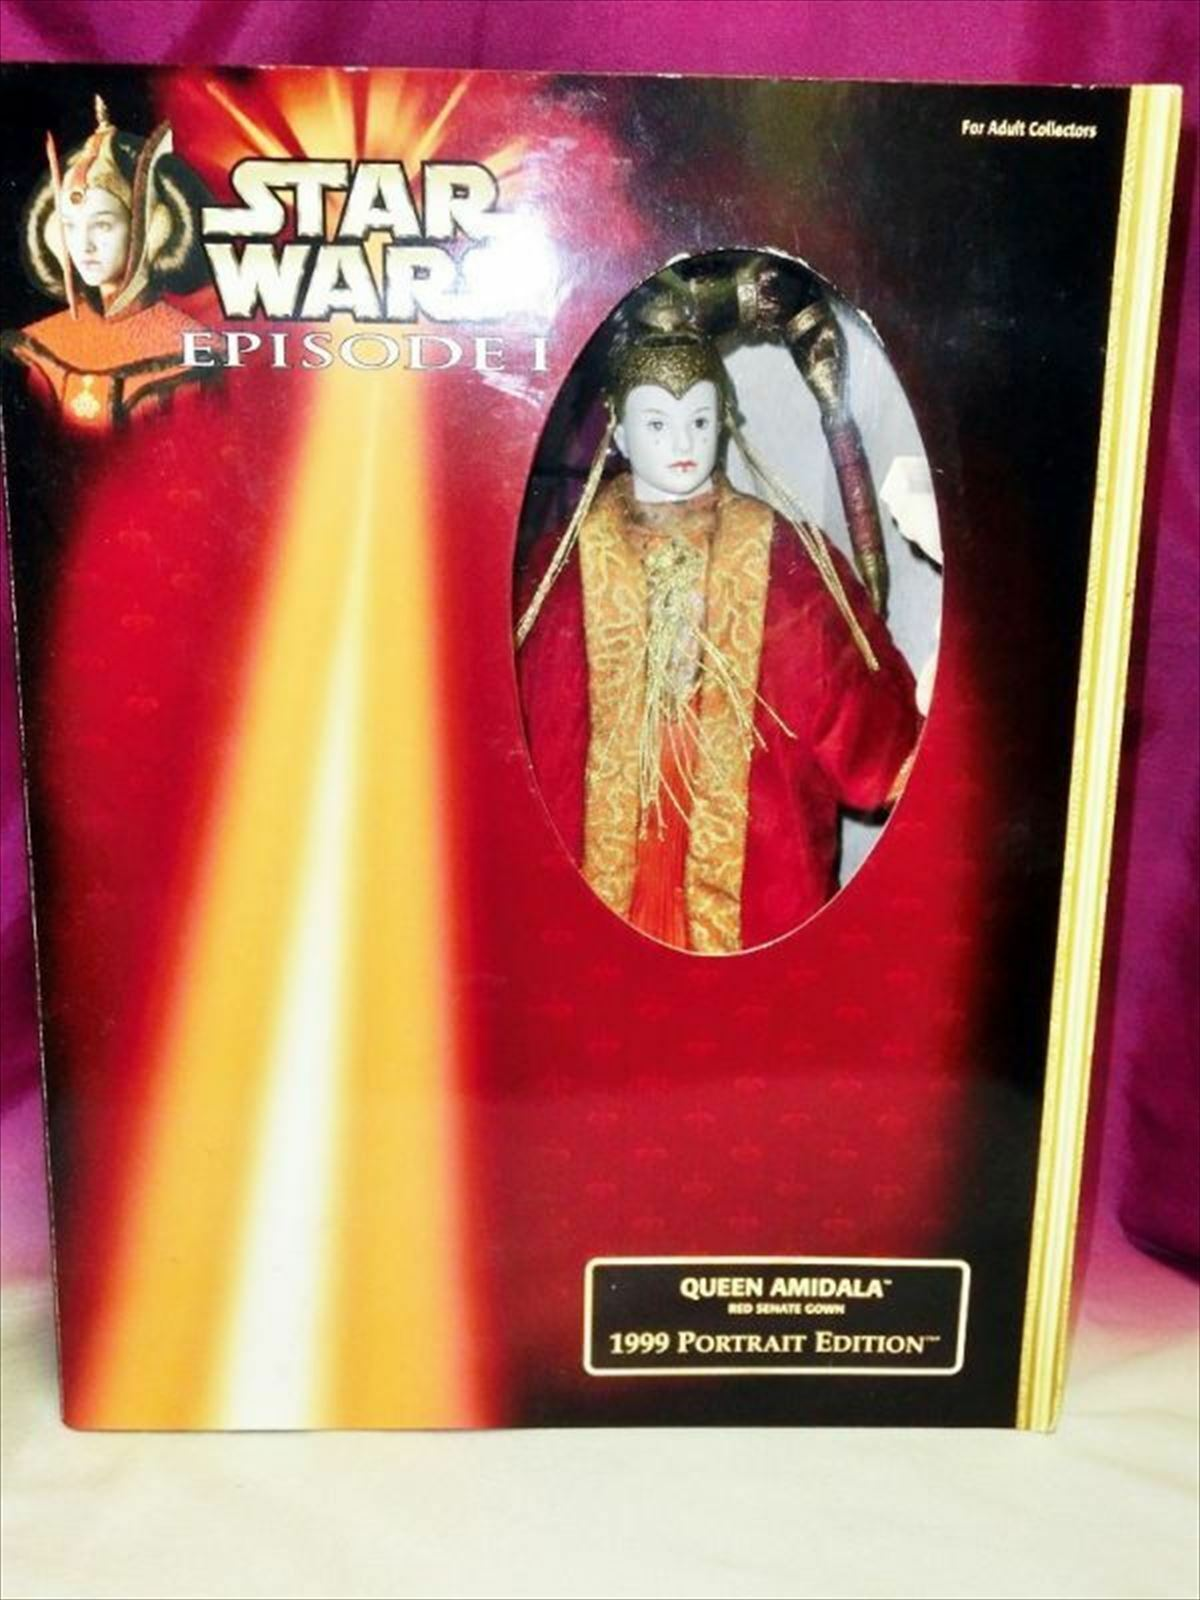 STAR WARS Episode 1 Queen Amidala 1999 Portrait Edition from JAPAN F/S